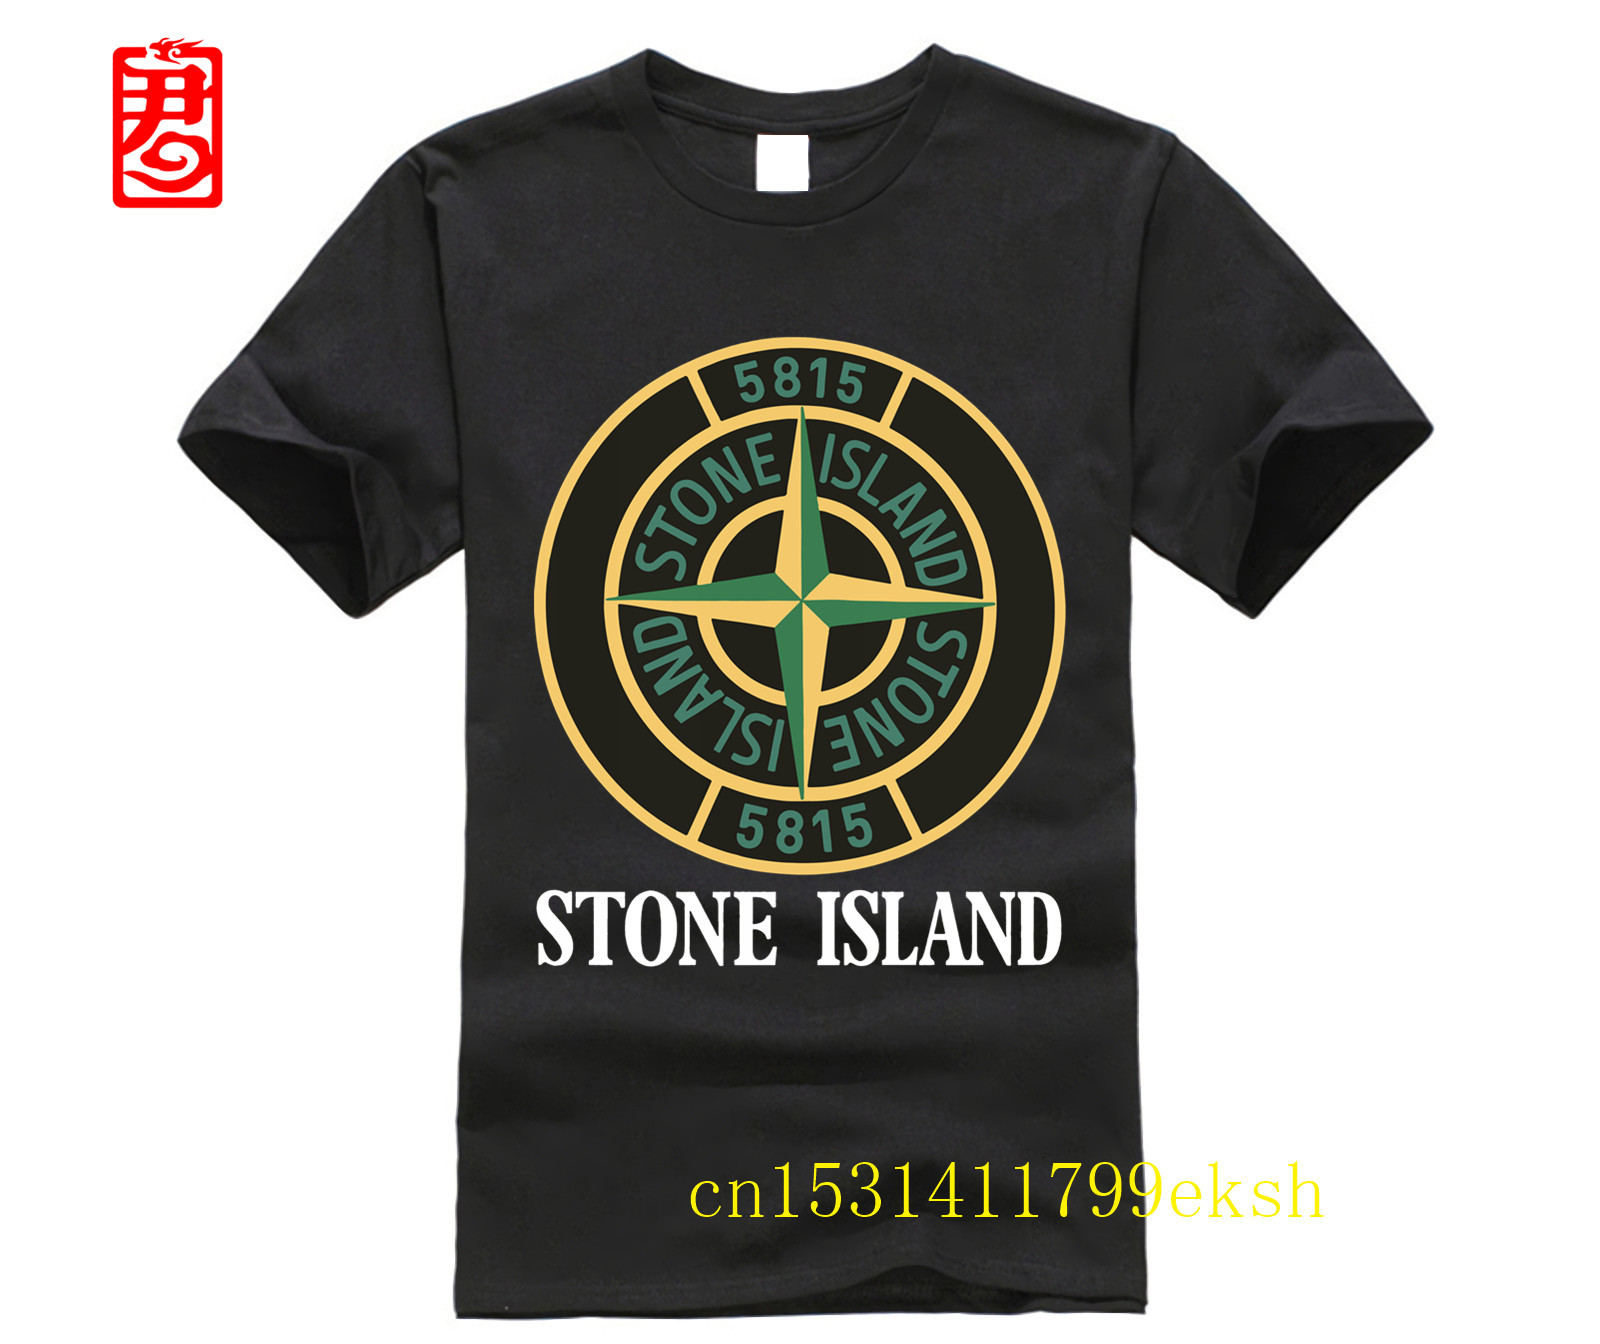 Stone Custom Men White T-Shirt Tee 2020 Fashion T Shirt Cheap Tee 2020 Hot Tees Black Size S-3XL Funny T-shirt Island TEE